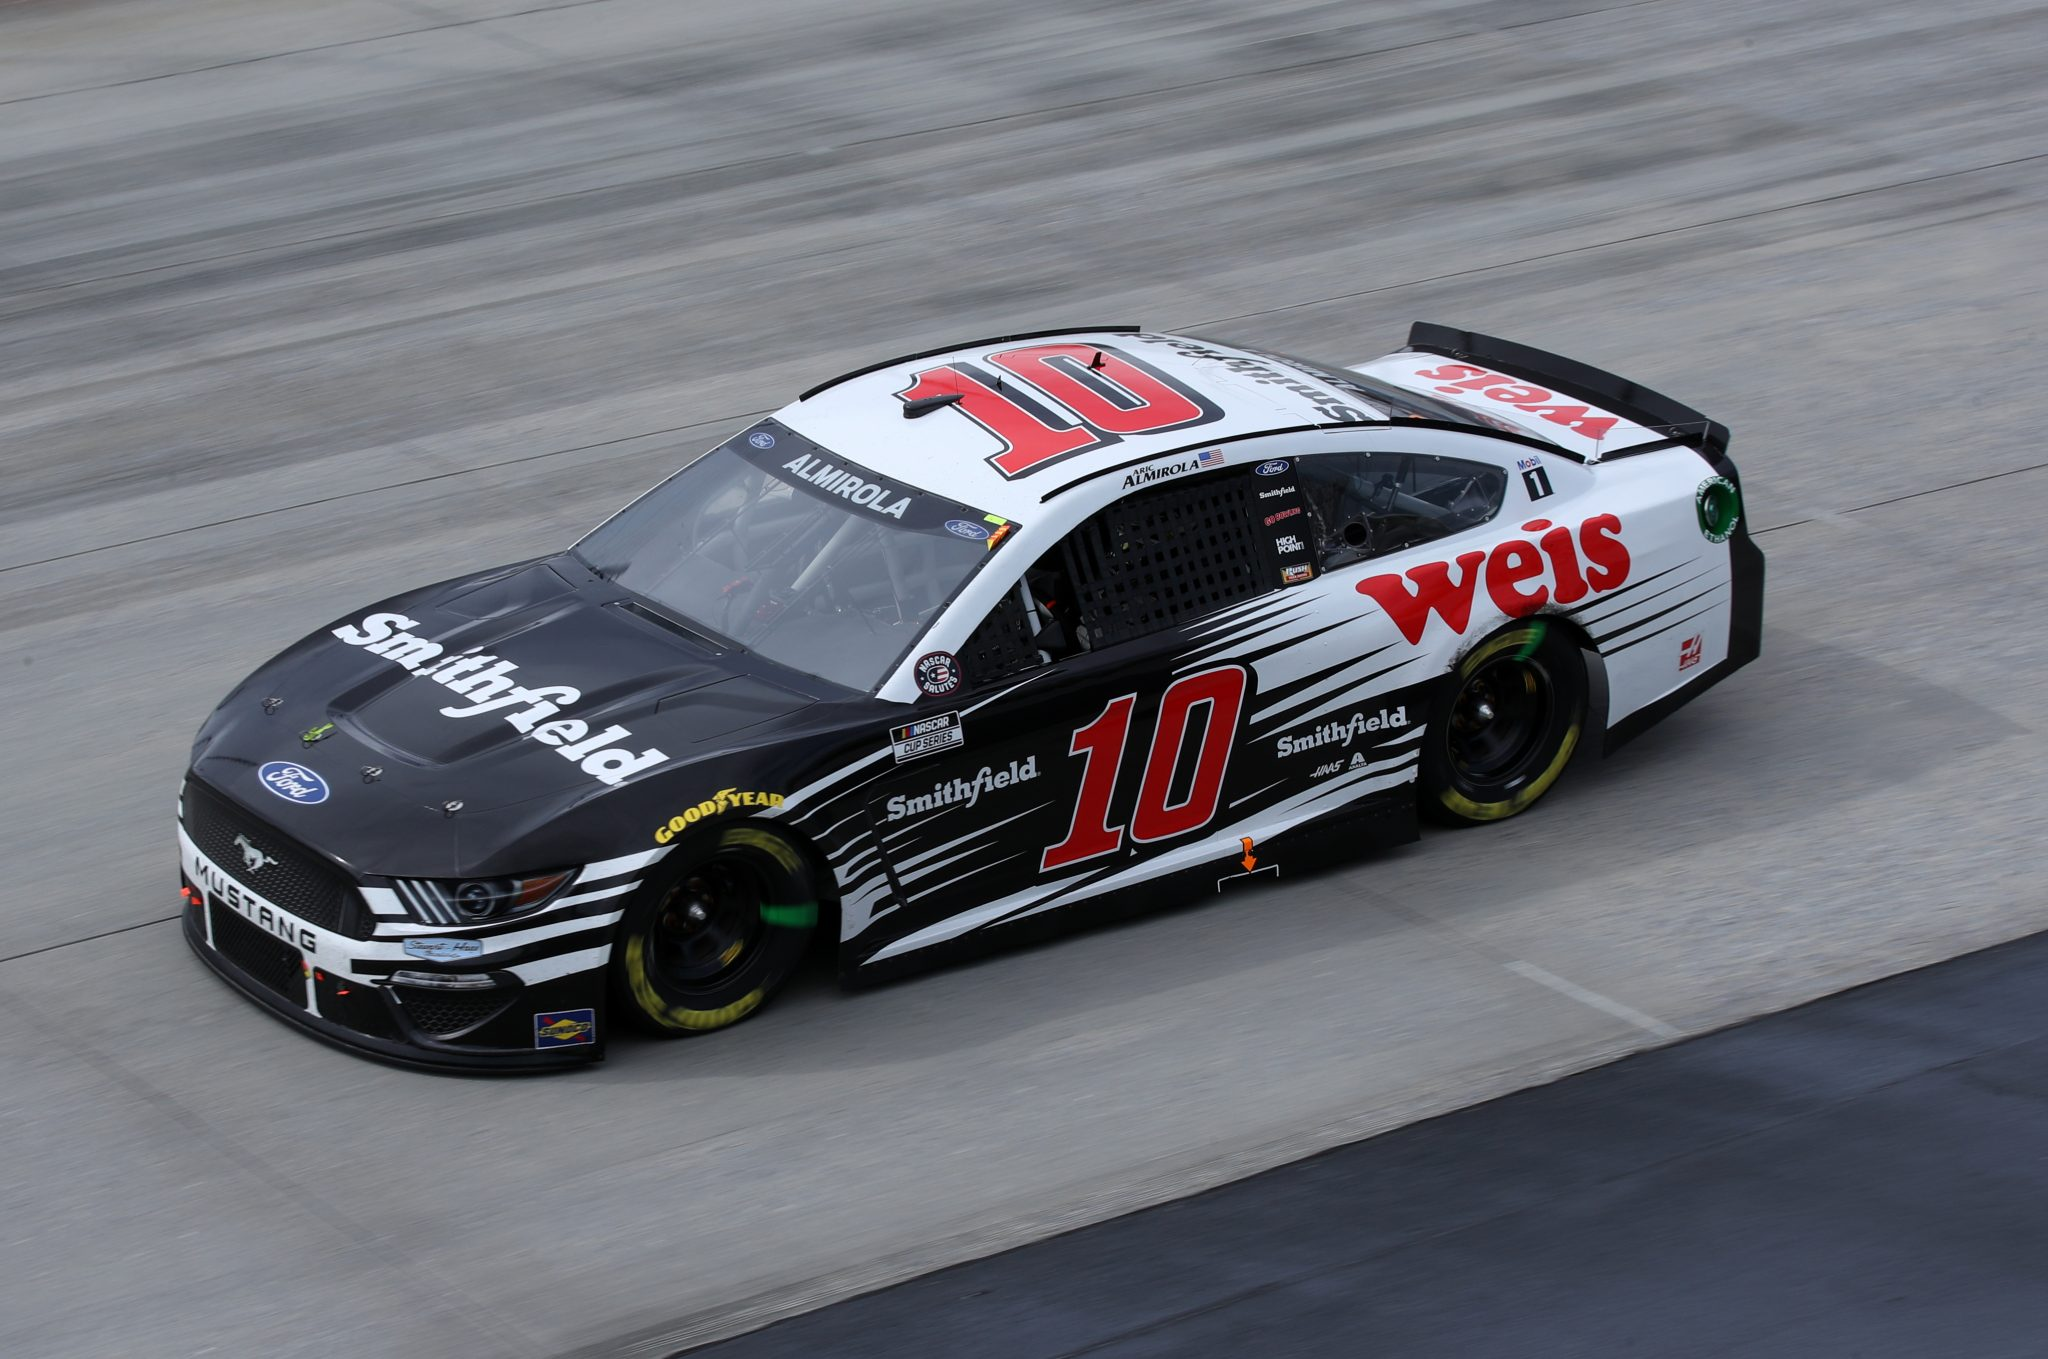 DOVER, DELAWARE - MAY 16: Aric Almirola, driver of the #10 Smithfield/Weis Markets Ford, races during the NASCAR Cup Series Drydene 400 at Dover International Speedway on May 16, 2021 in Dover, Delaware. (Photo by Sean Gardner/Getty Images) | Getty Images